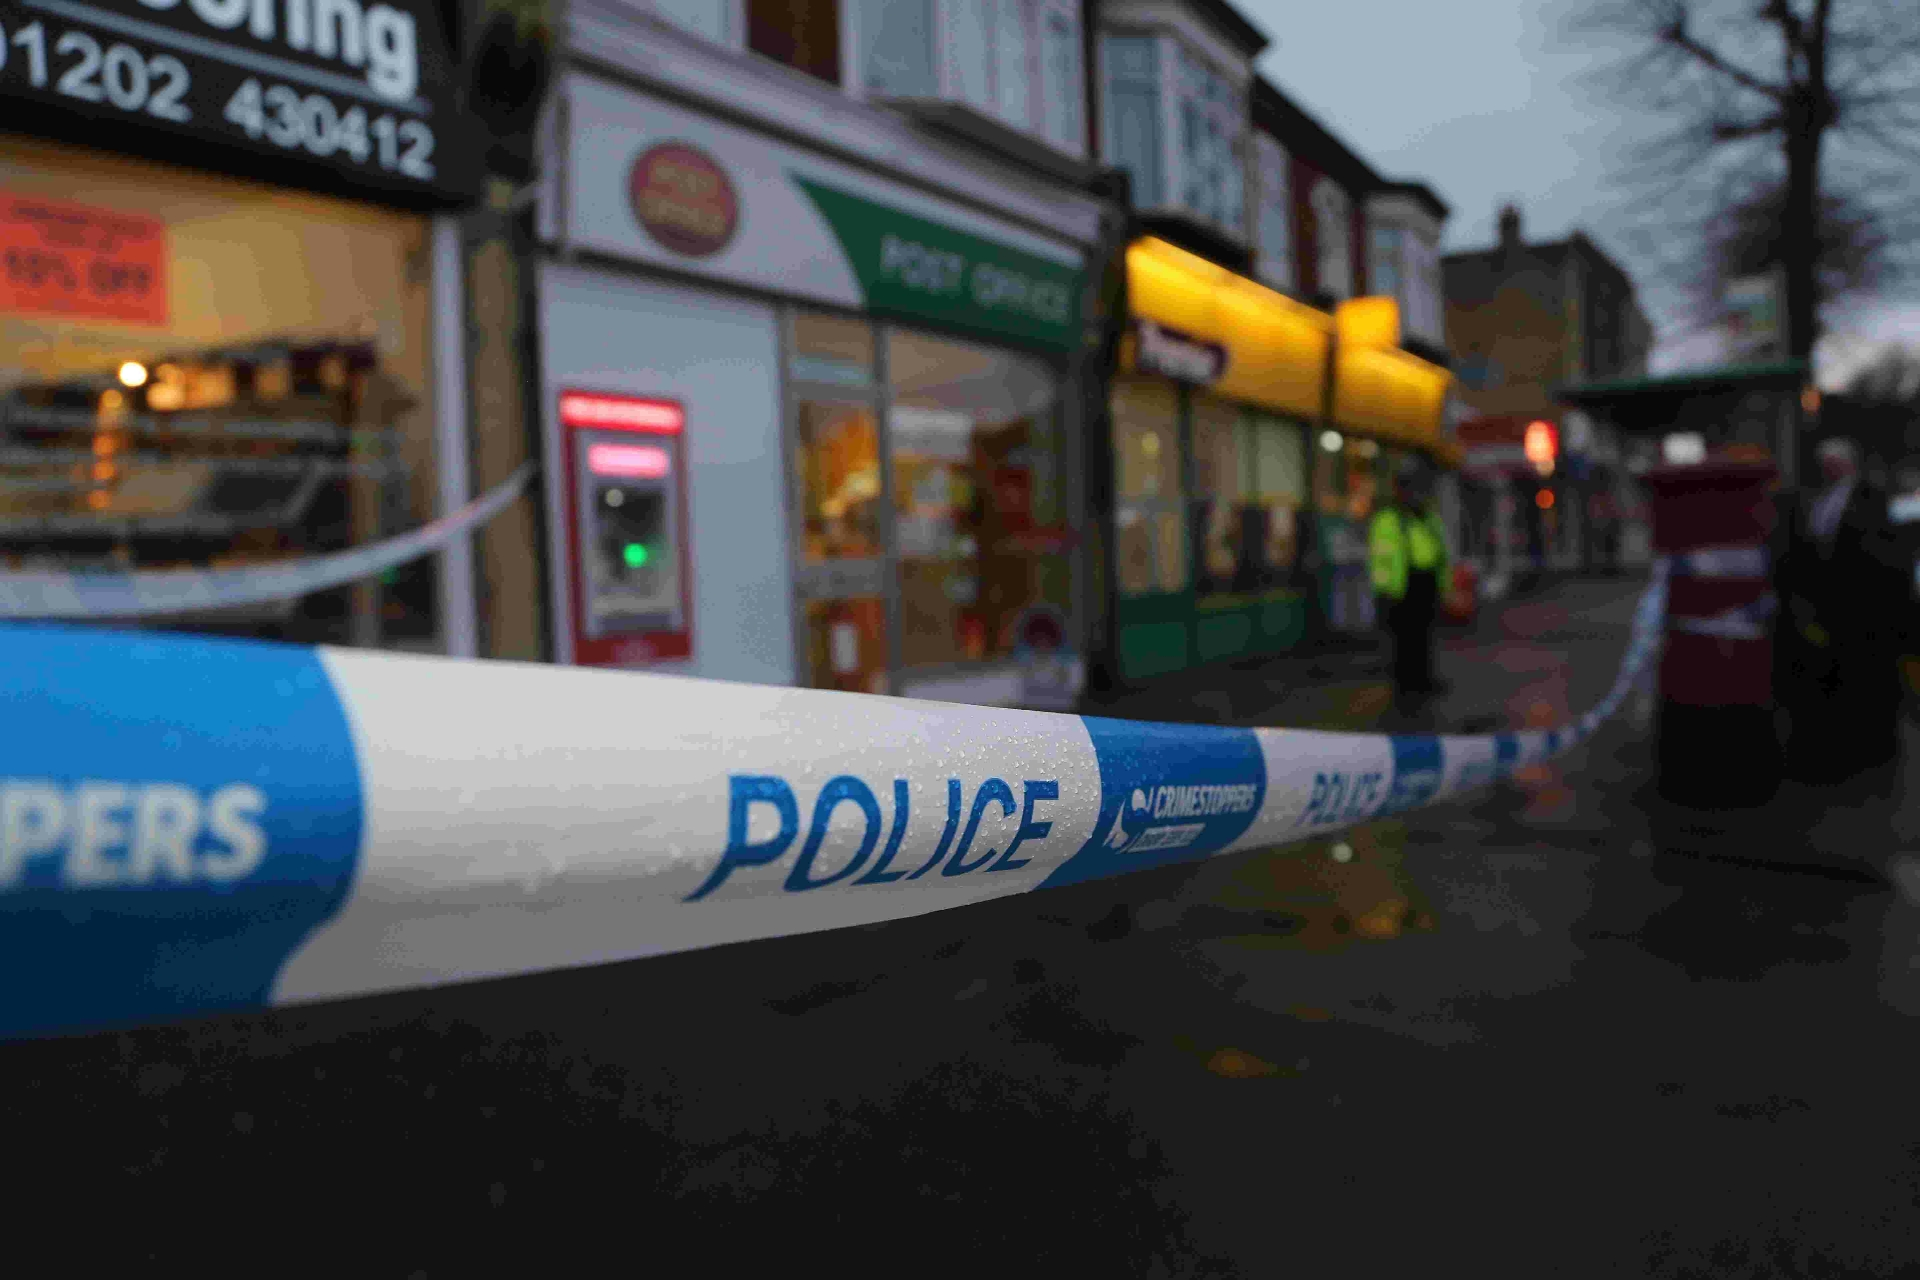 Handgun used in armed Post Office robbery where raiders stole £300